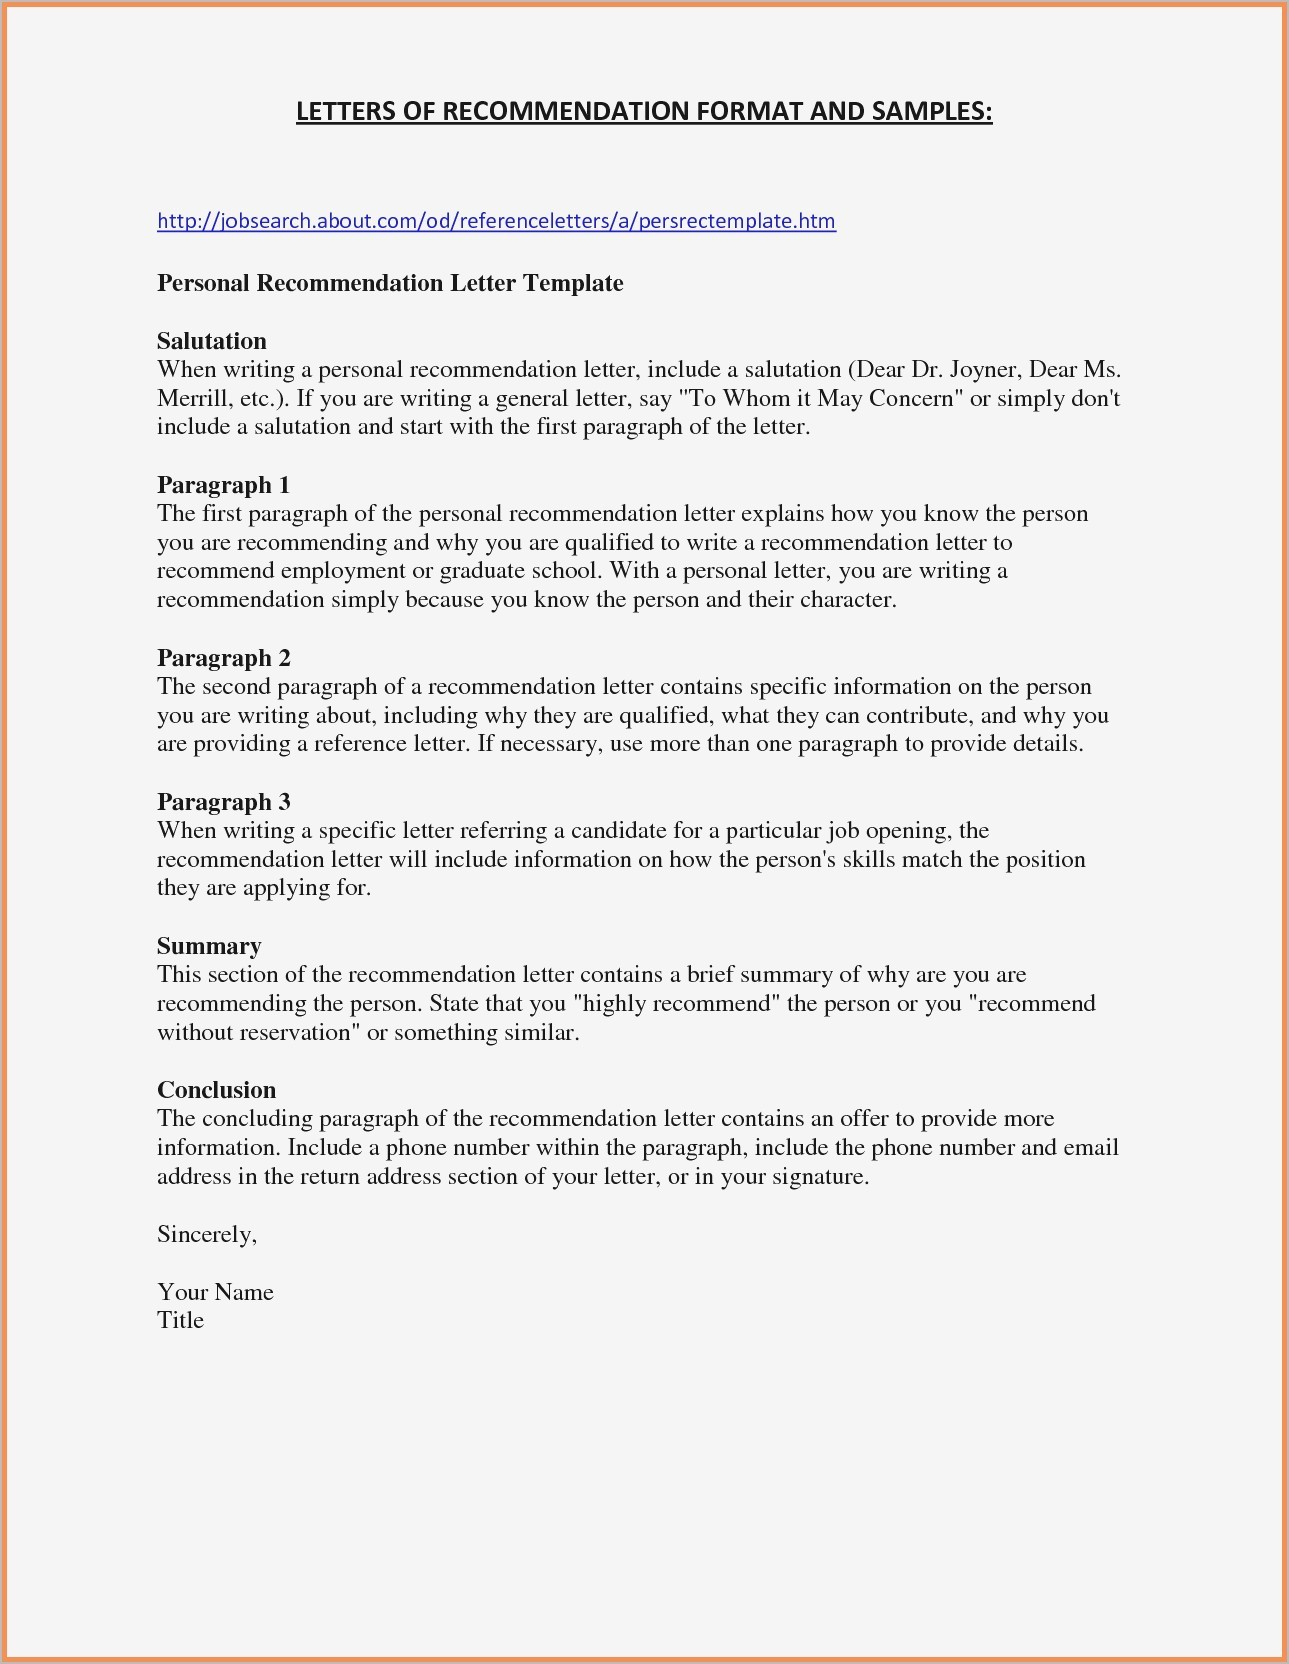 Free Letter Of Recommendation Template - Job Letter Re Mendation Template Best Free Letter Re Mendation